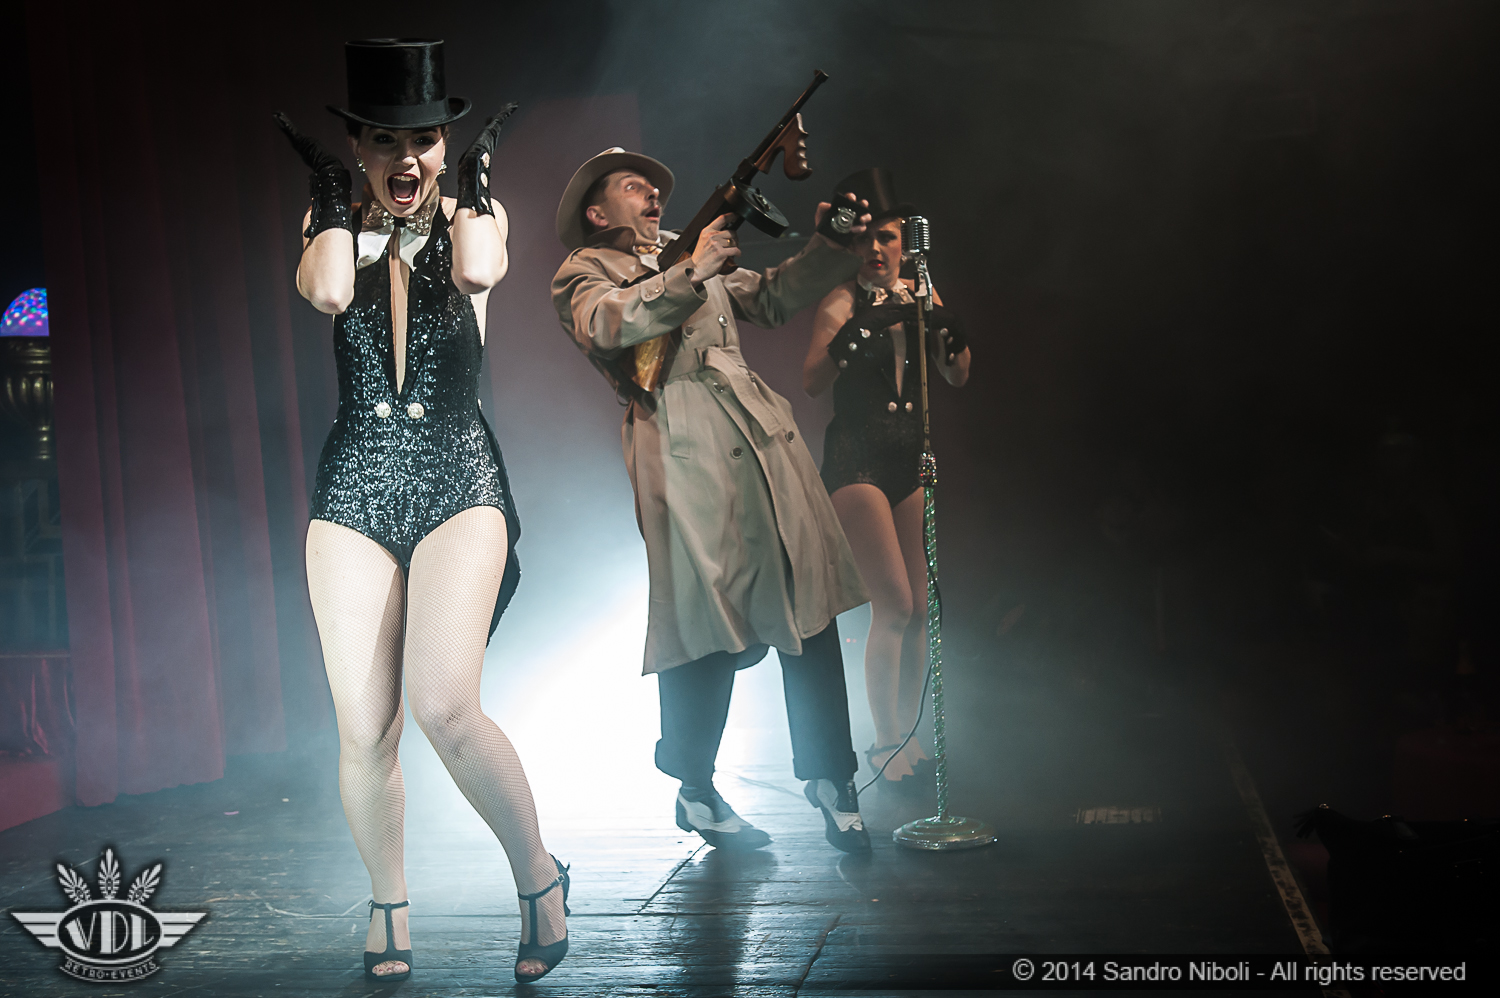 mobsters-milano-burlesque.jpg